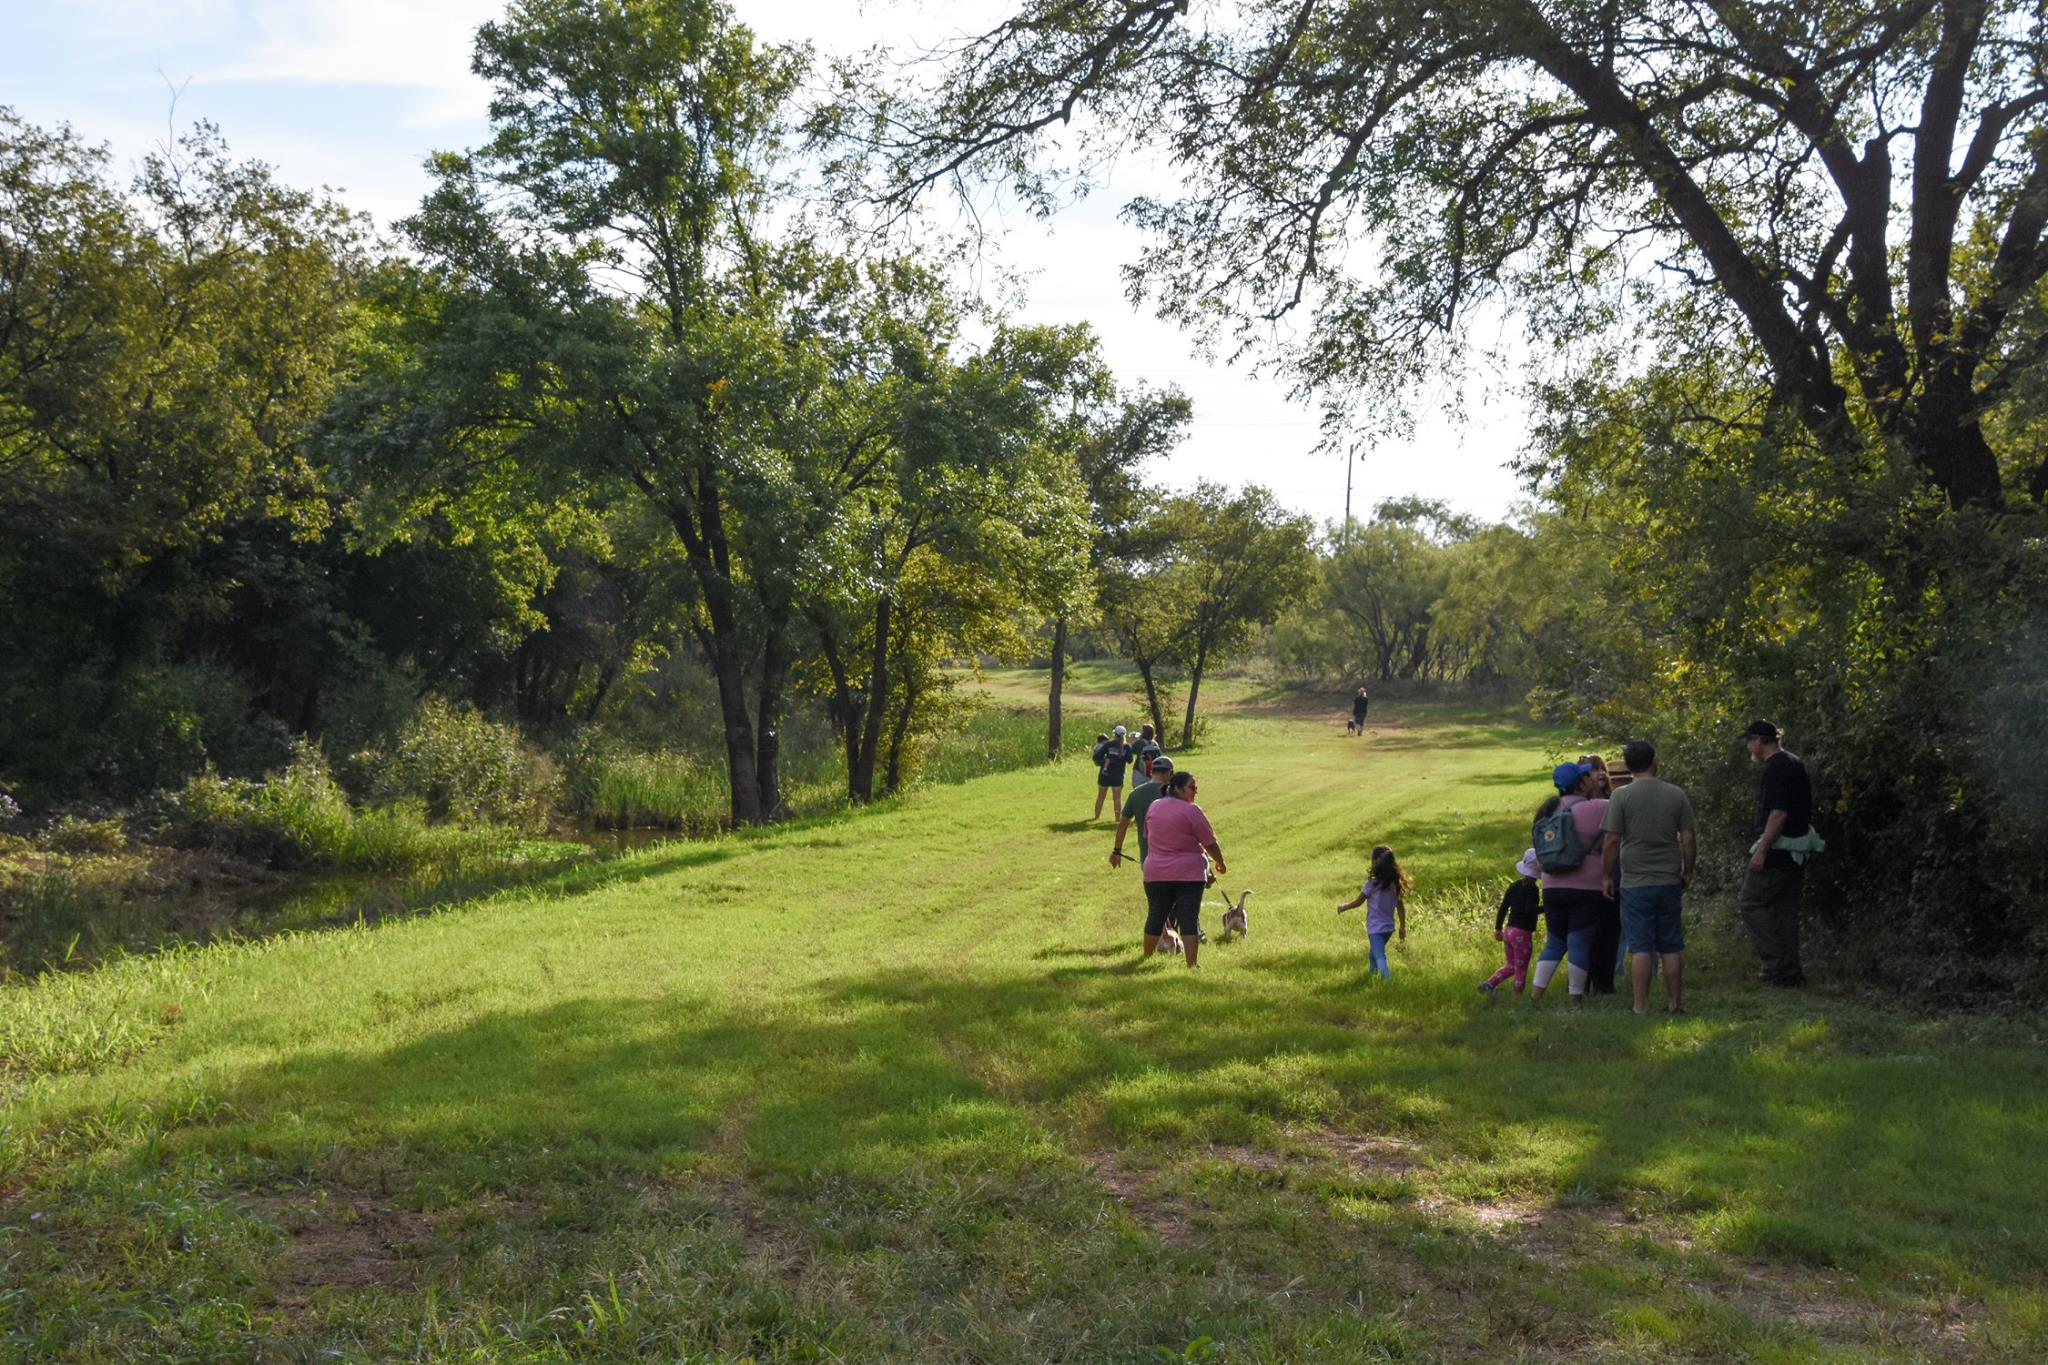 Abilene residents hike the Cedar Creek Waterway as part of the semi-annual Mayor's hike